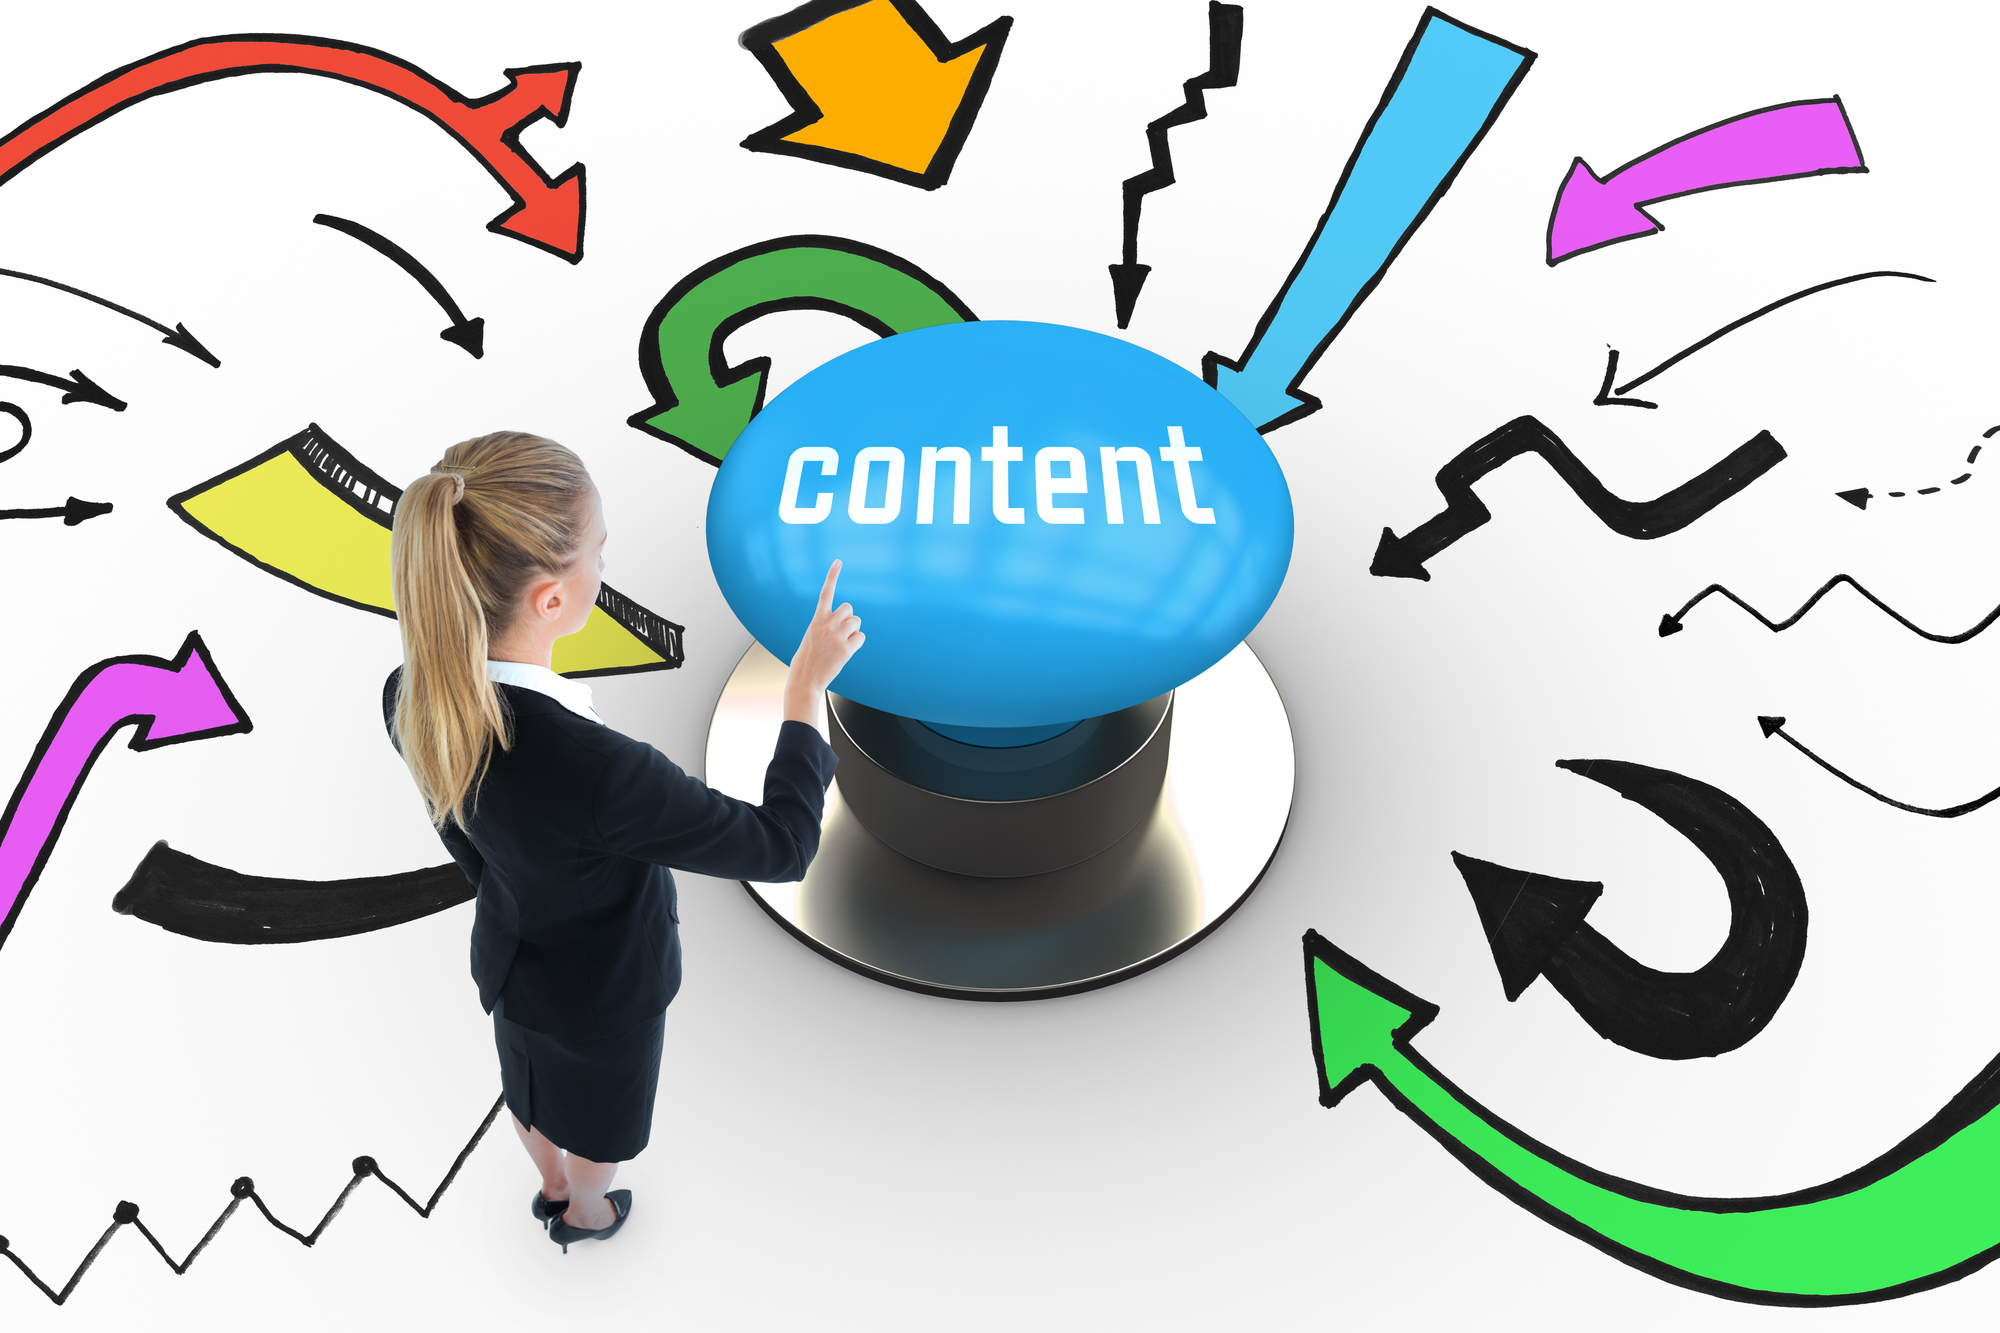 Stop These 8 Bad Content Marketing Habits Now if You Want Measurable Business Results